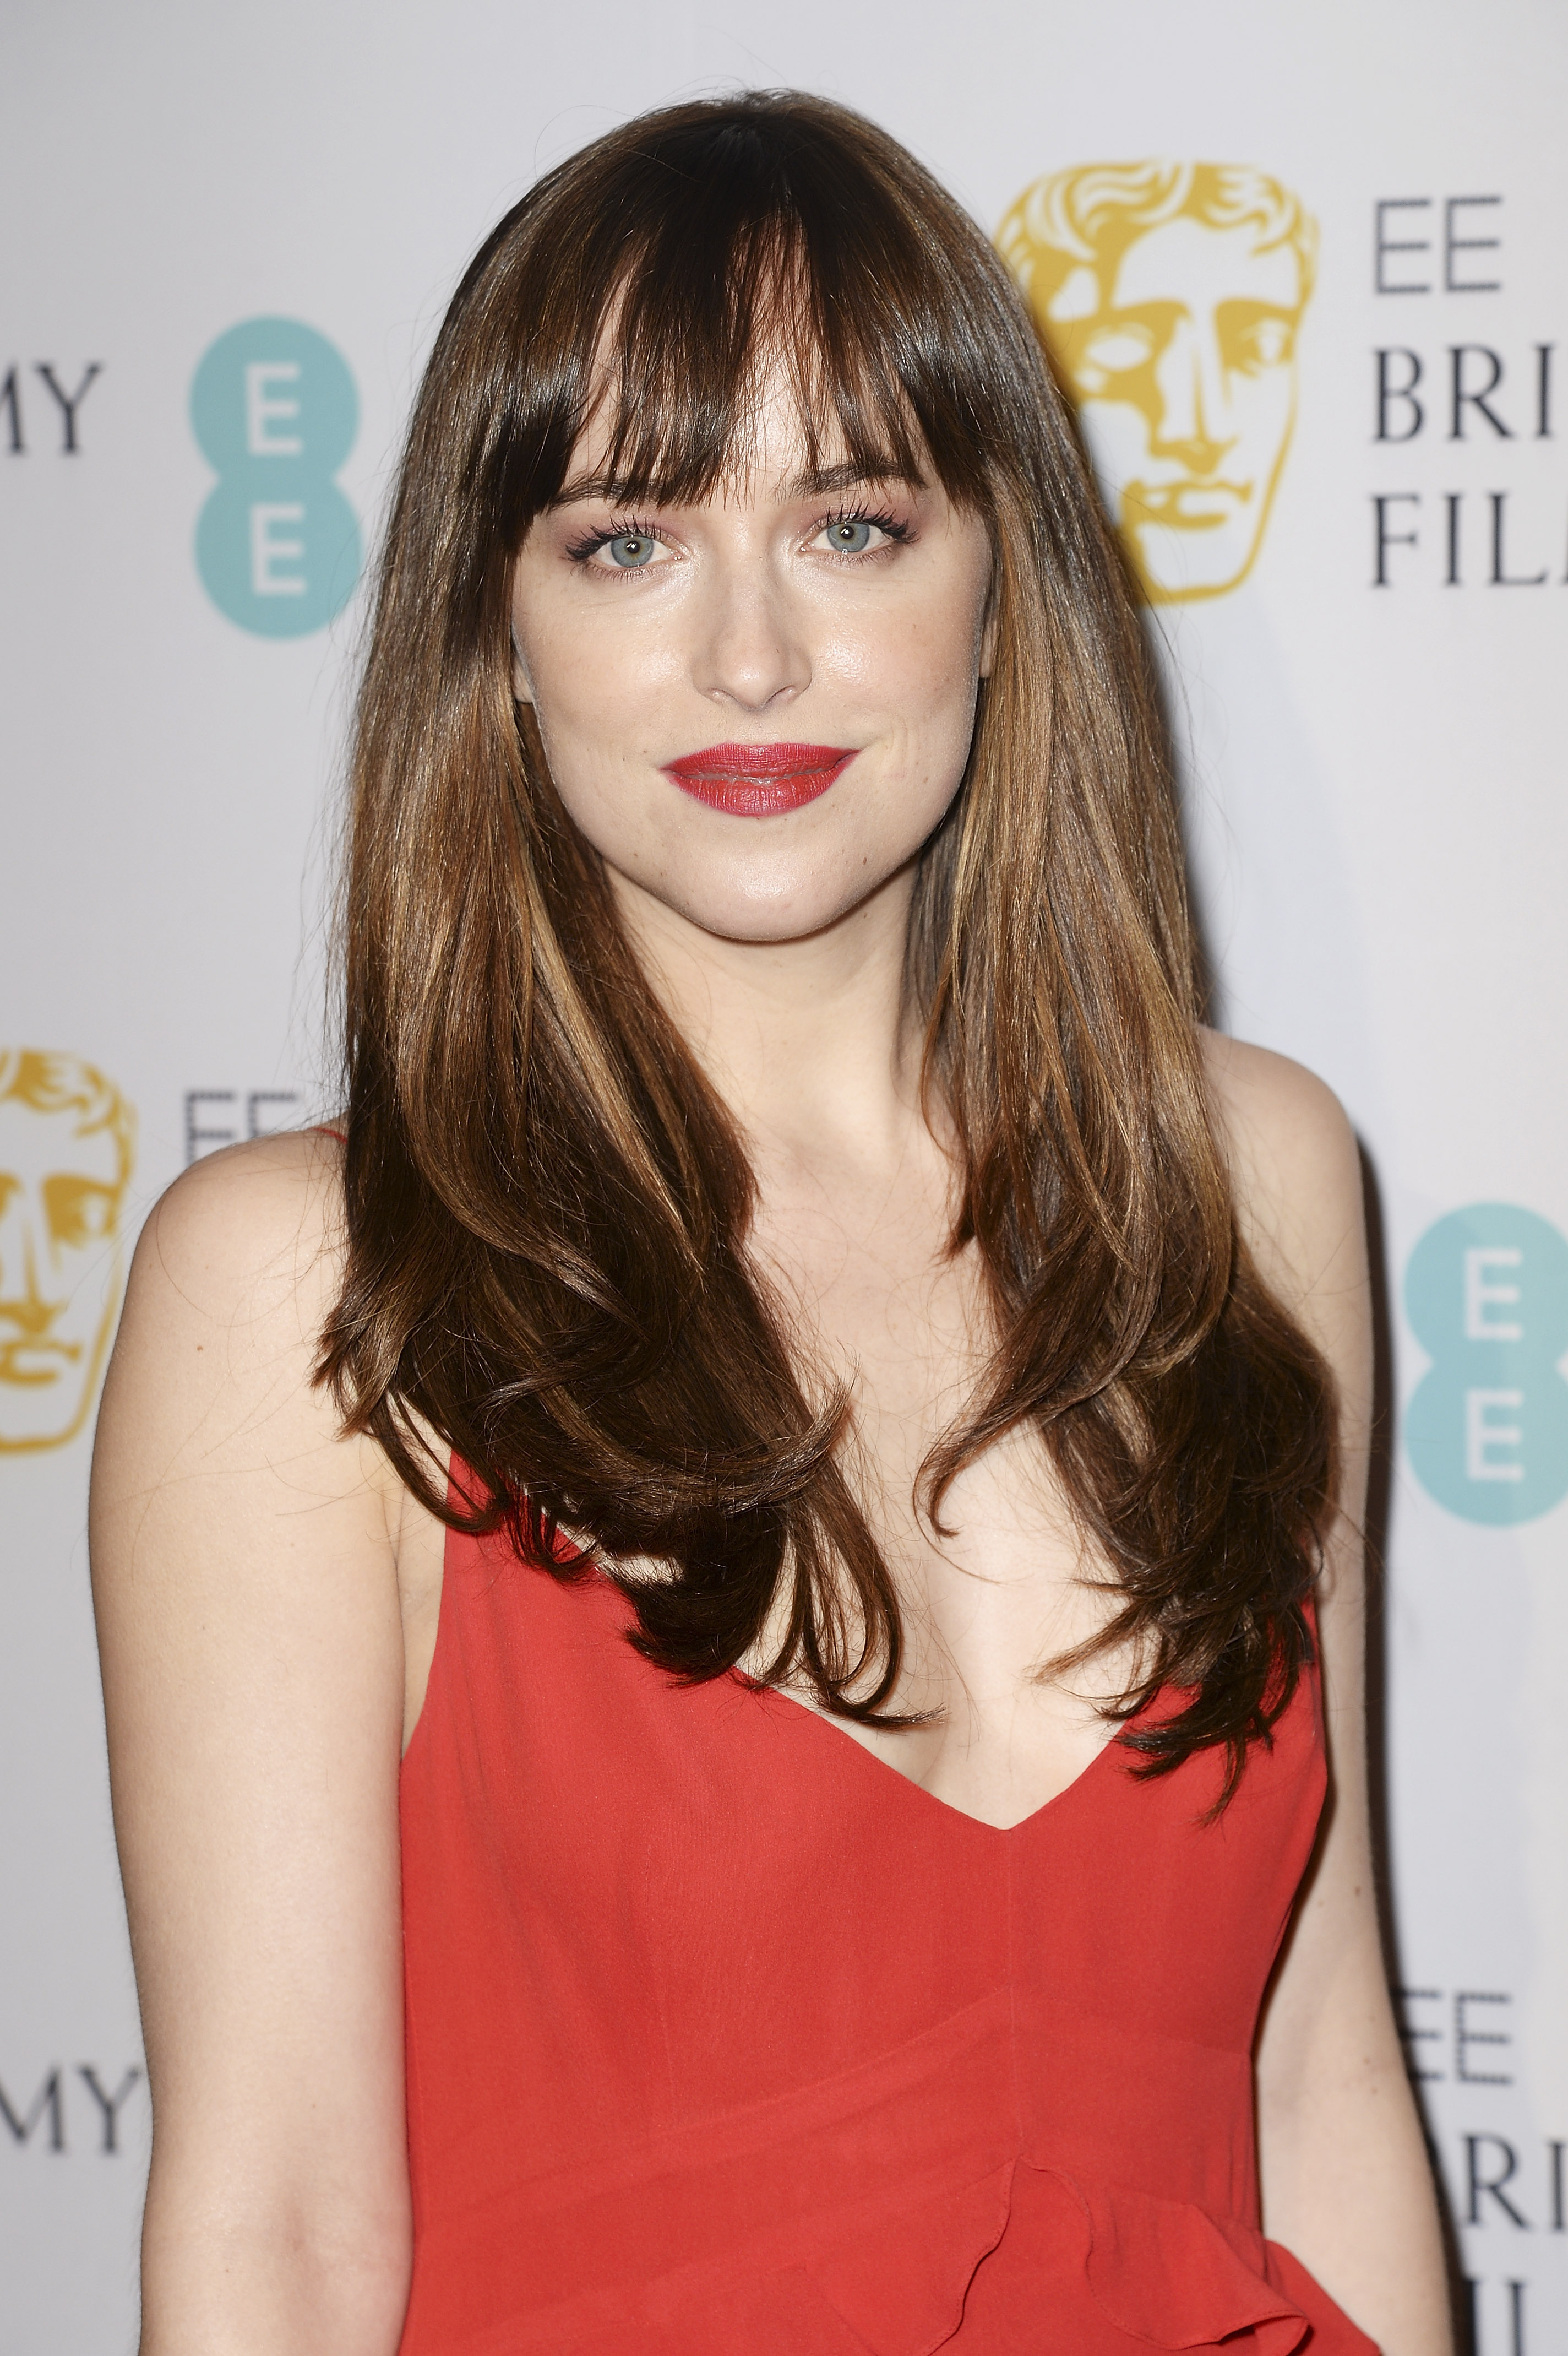 104 Hairstyles With Bangs You'll Want To Copy Celebrity Haircuts